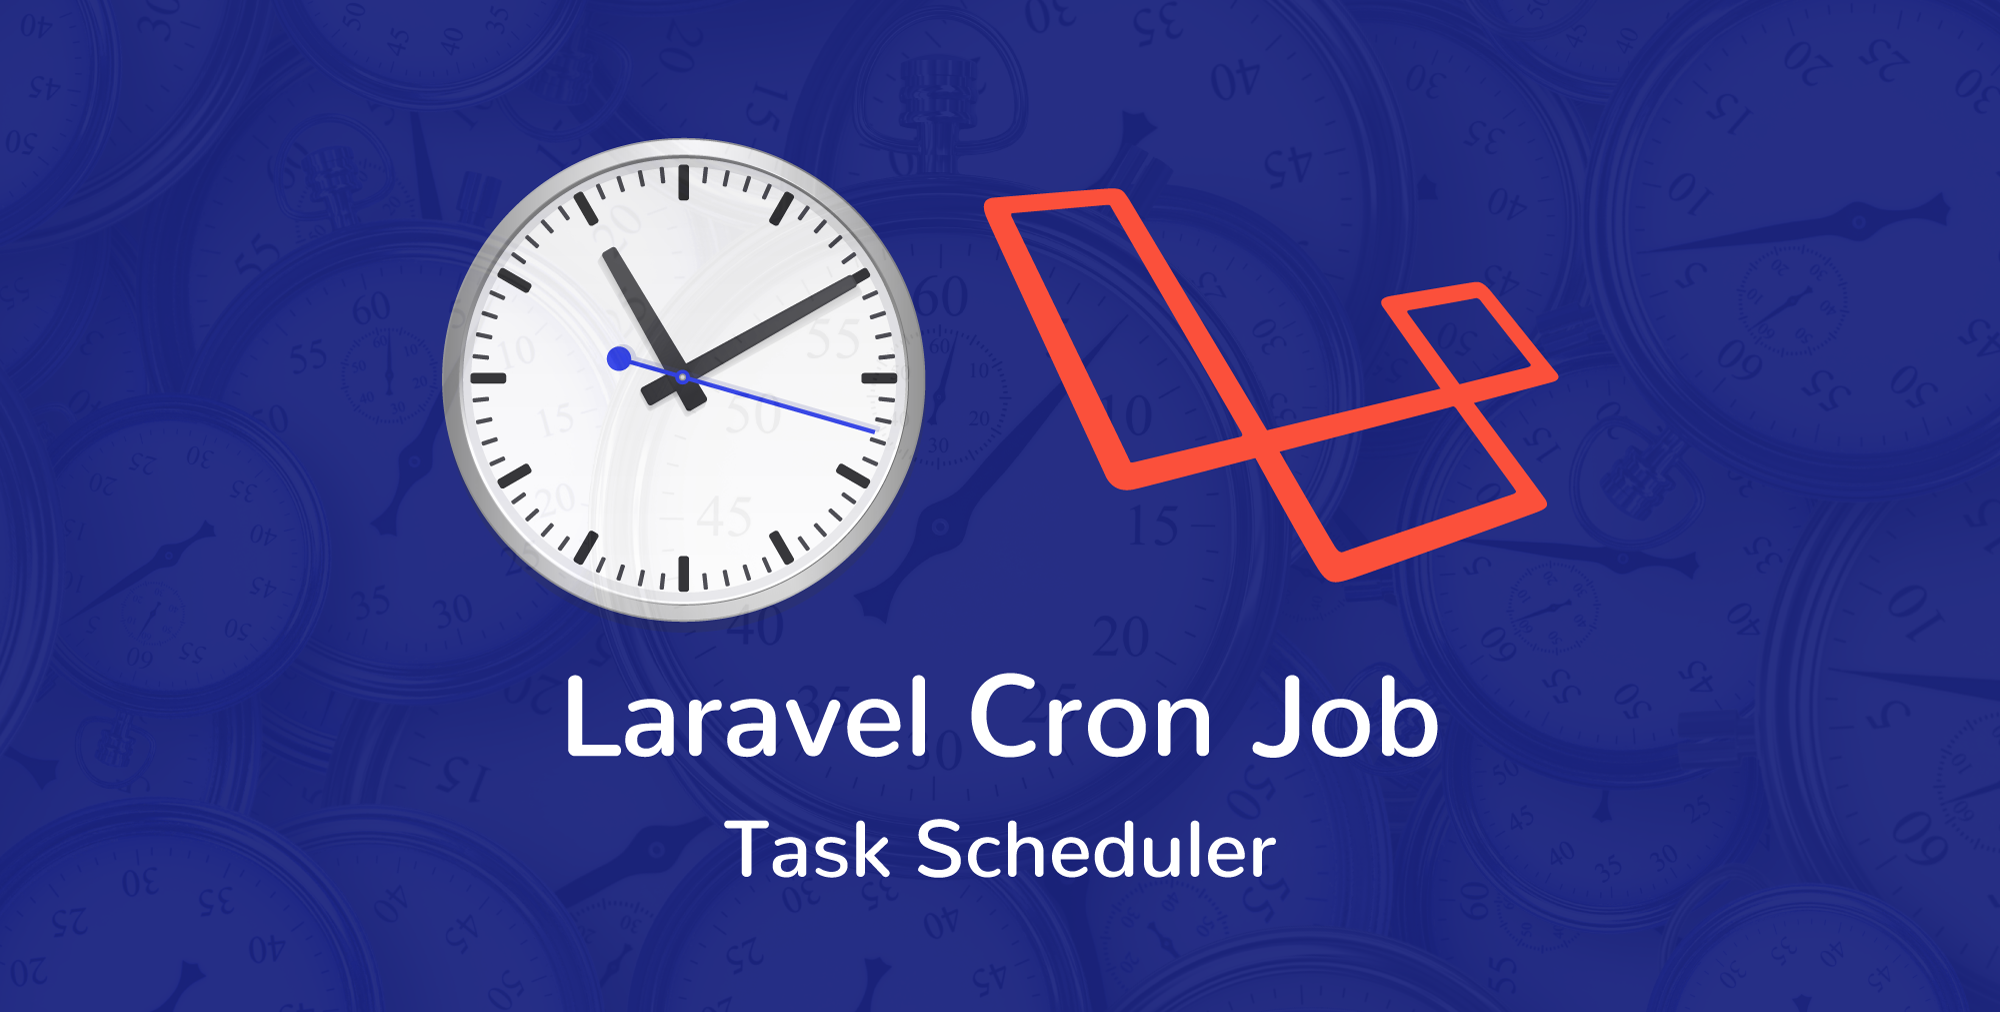 Laravel Cron Job Task Scheduler